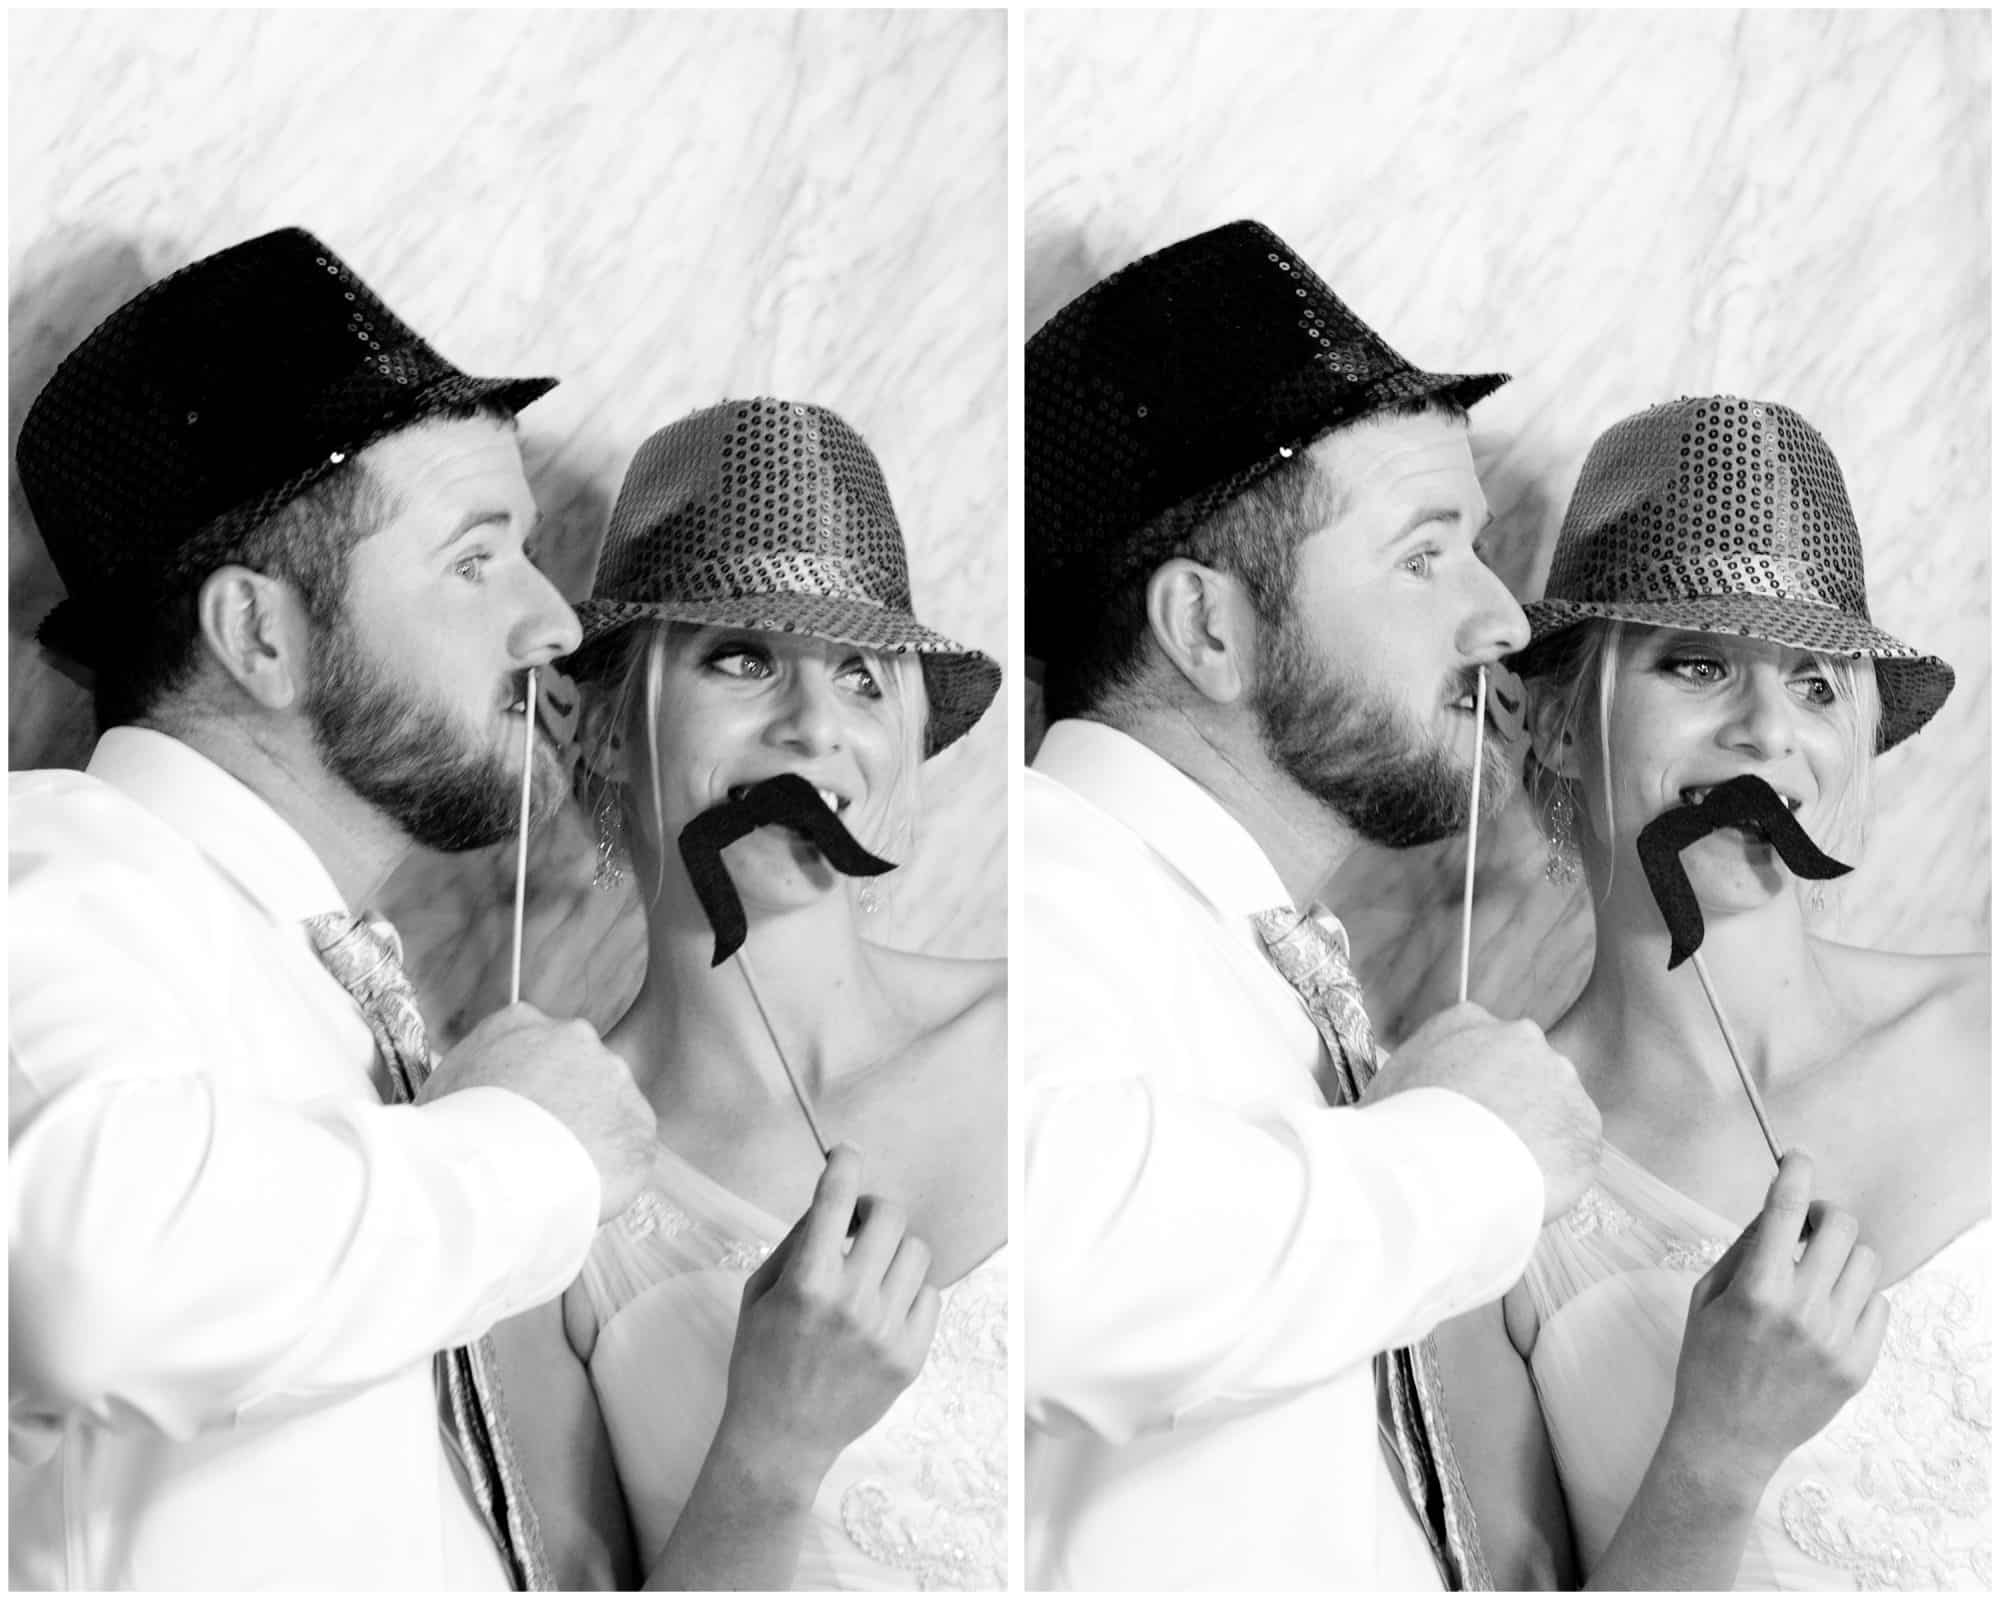 leesburg opera house wedding - photo booth rental